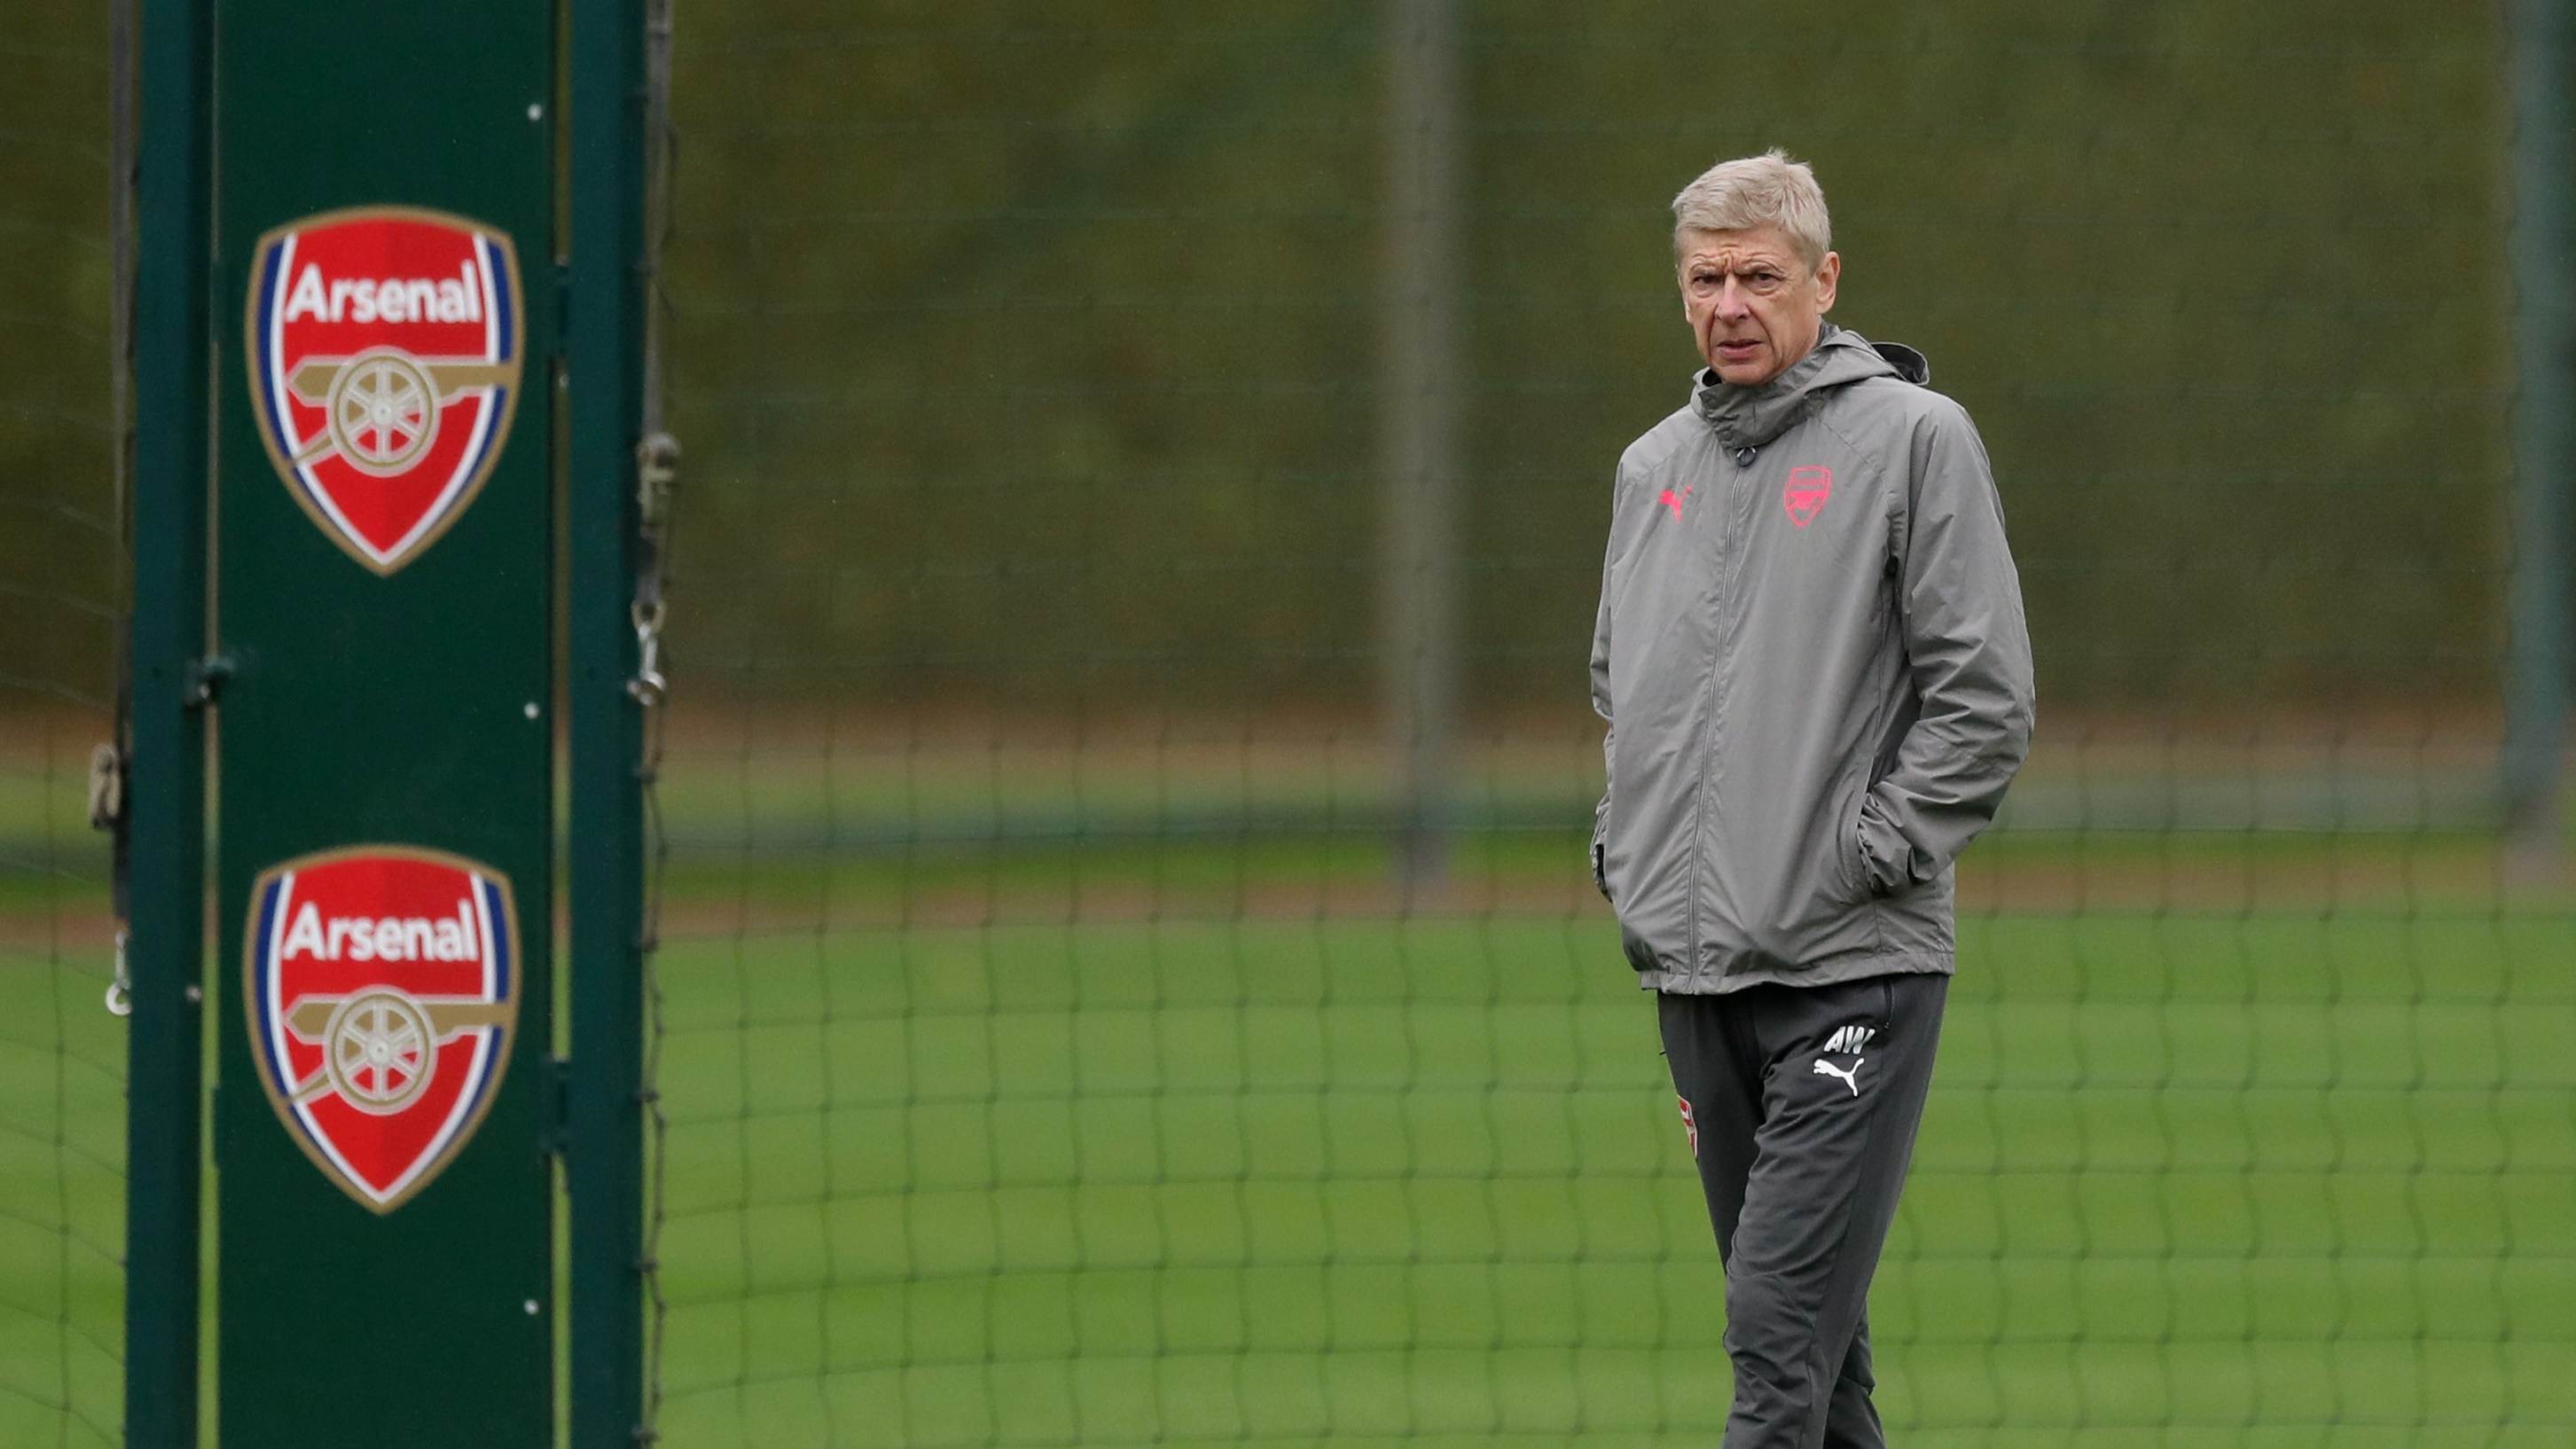 Wenger could be set for a heavy defeat at Man City on Sunday